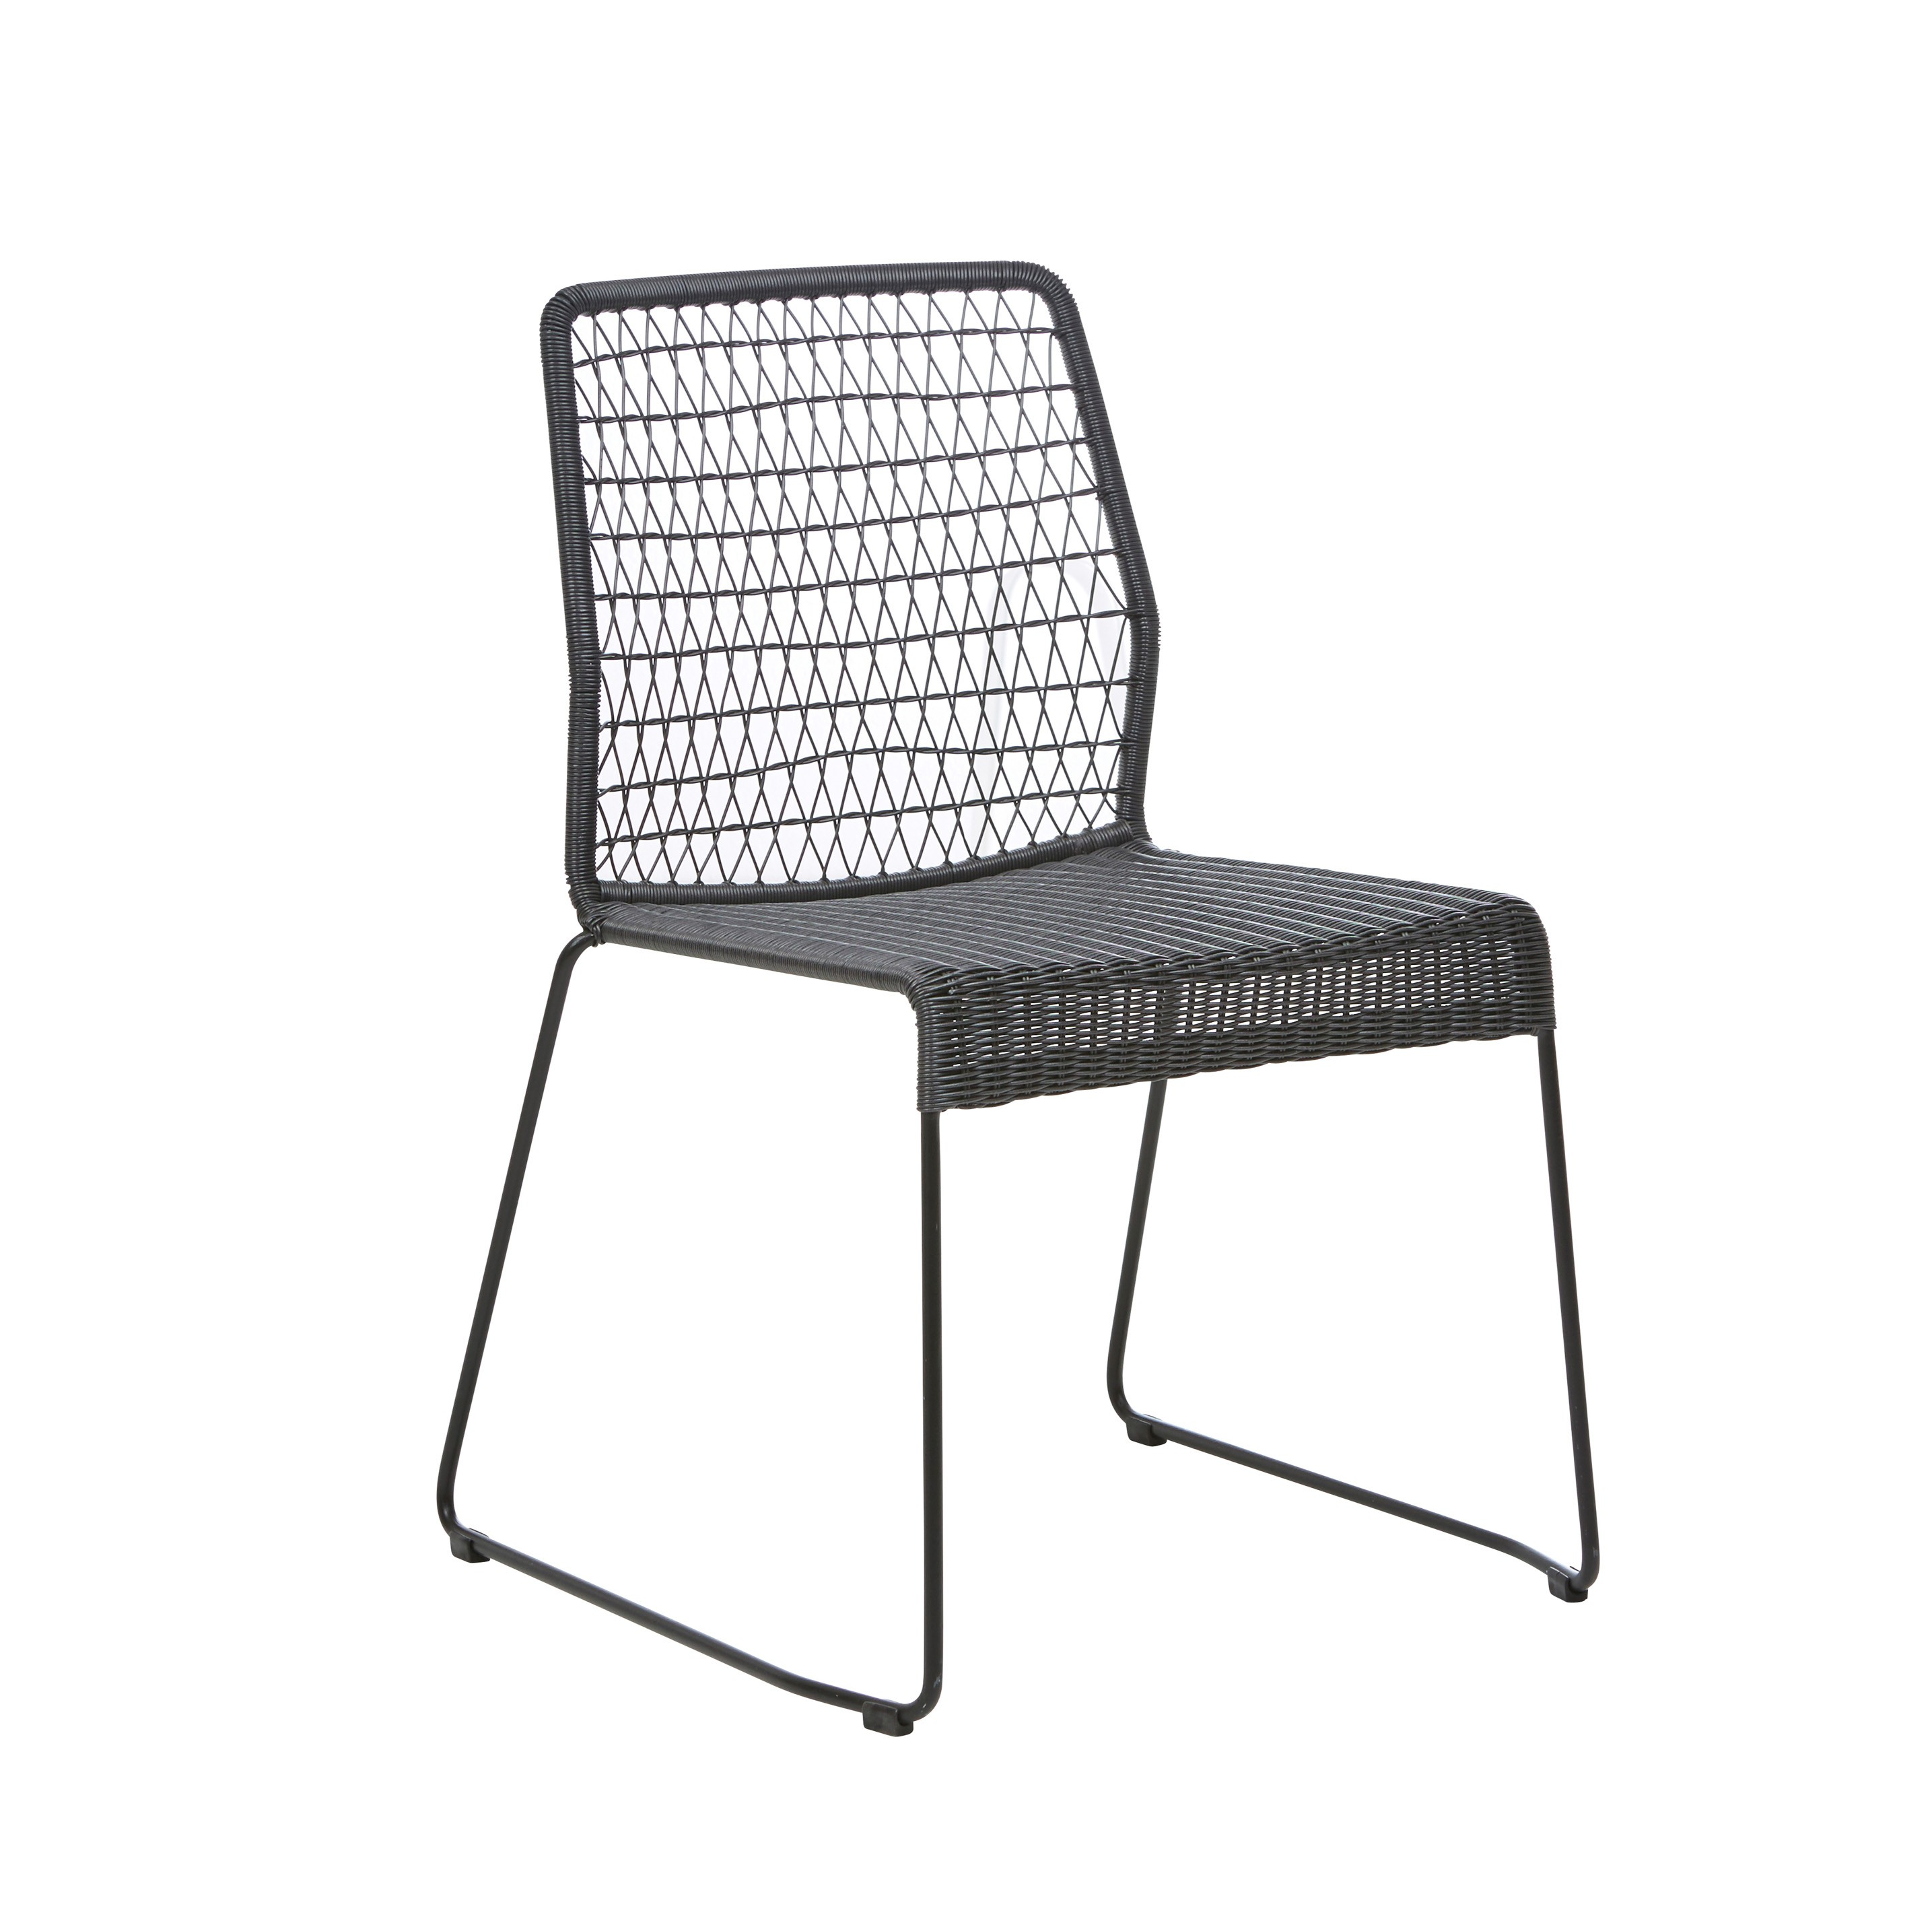 Furniture Hero-Images Dining-Chairs-Benches-and-Stools granada-twist-01